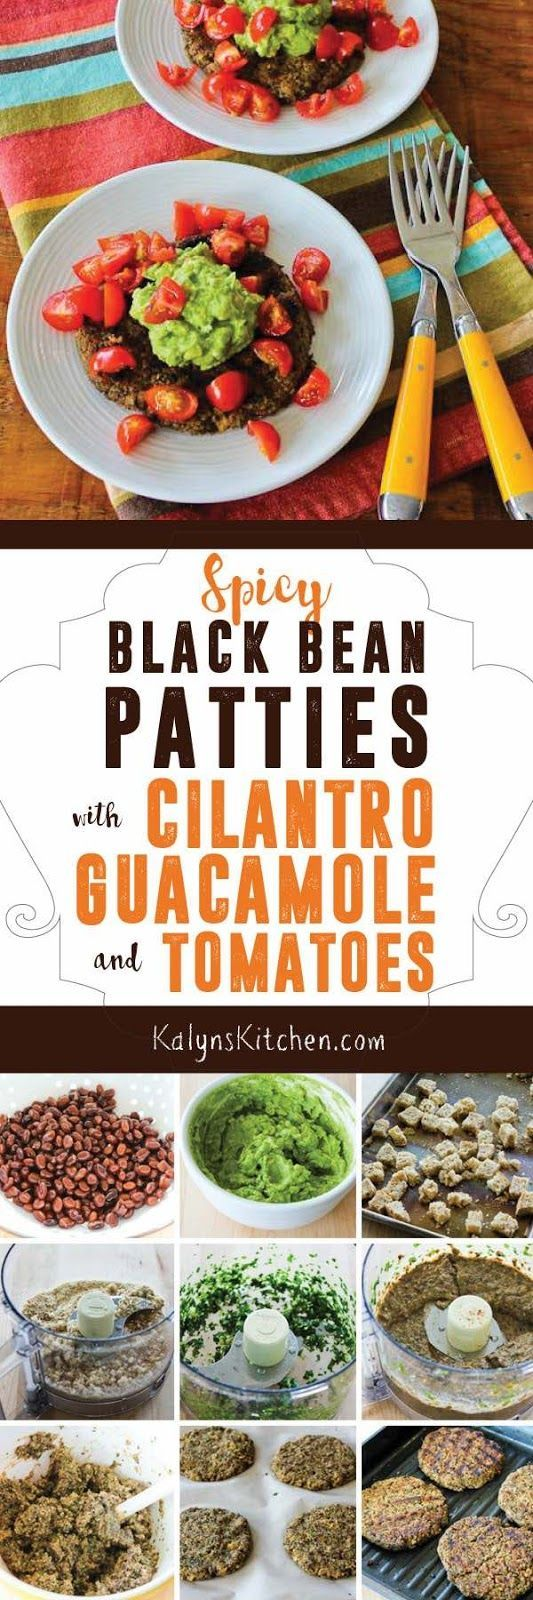 These Spicy Black Bean Patties with Cilantro, Guacamole, and Tomatoes make a…